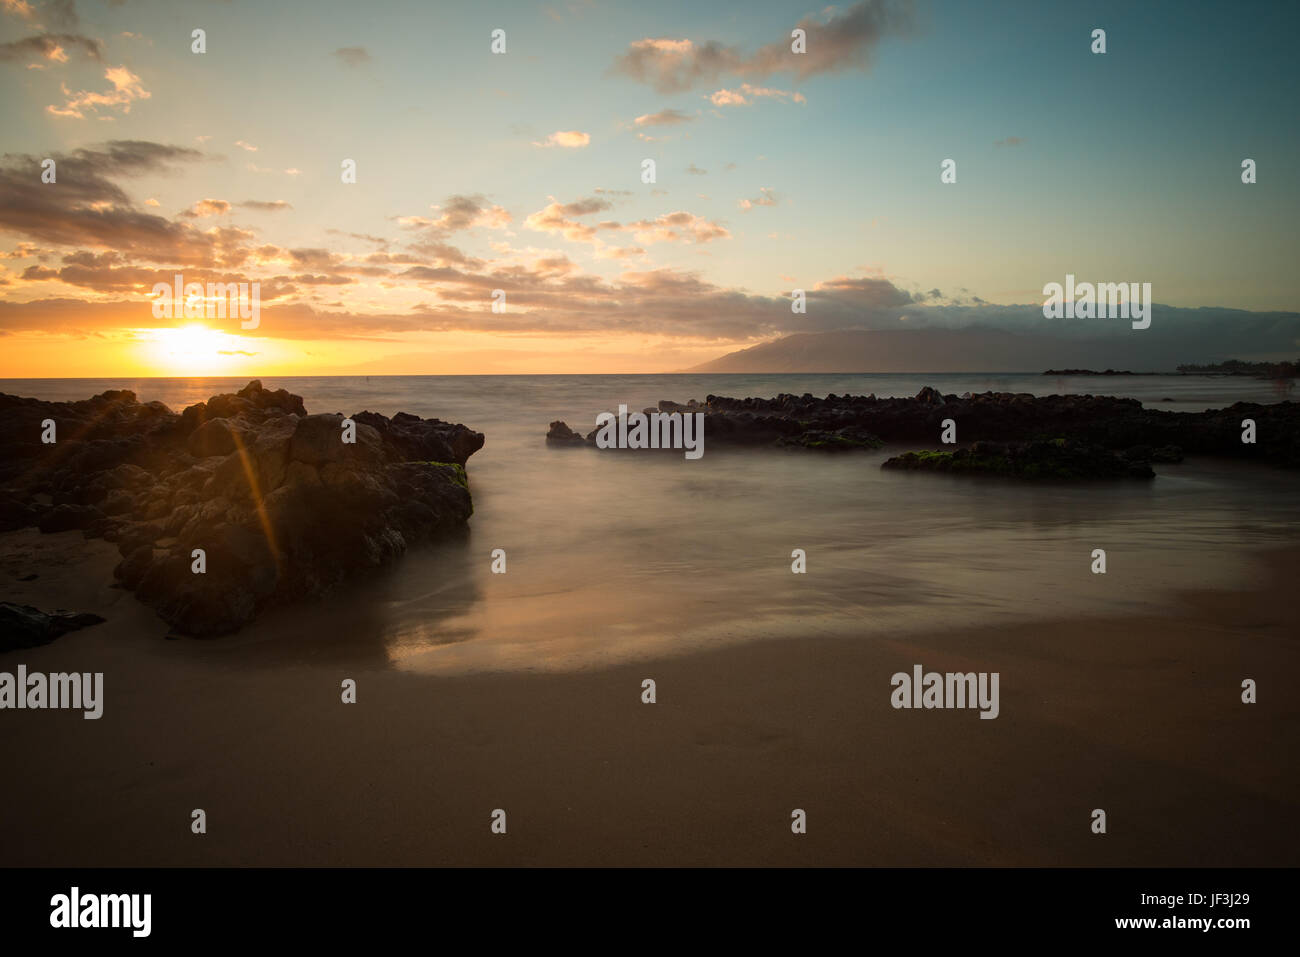 sunset-on-the-kamaole-iii-beach-park-in-